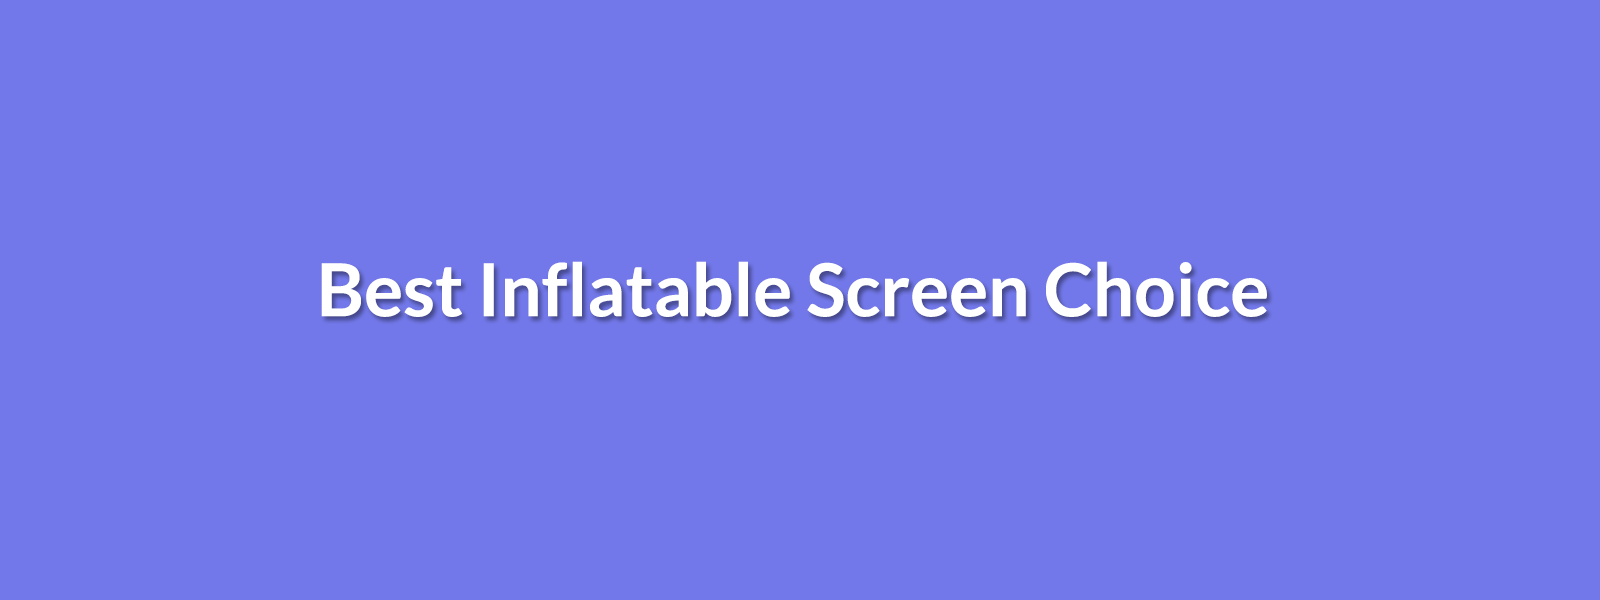 Inflatable Screen Choice